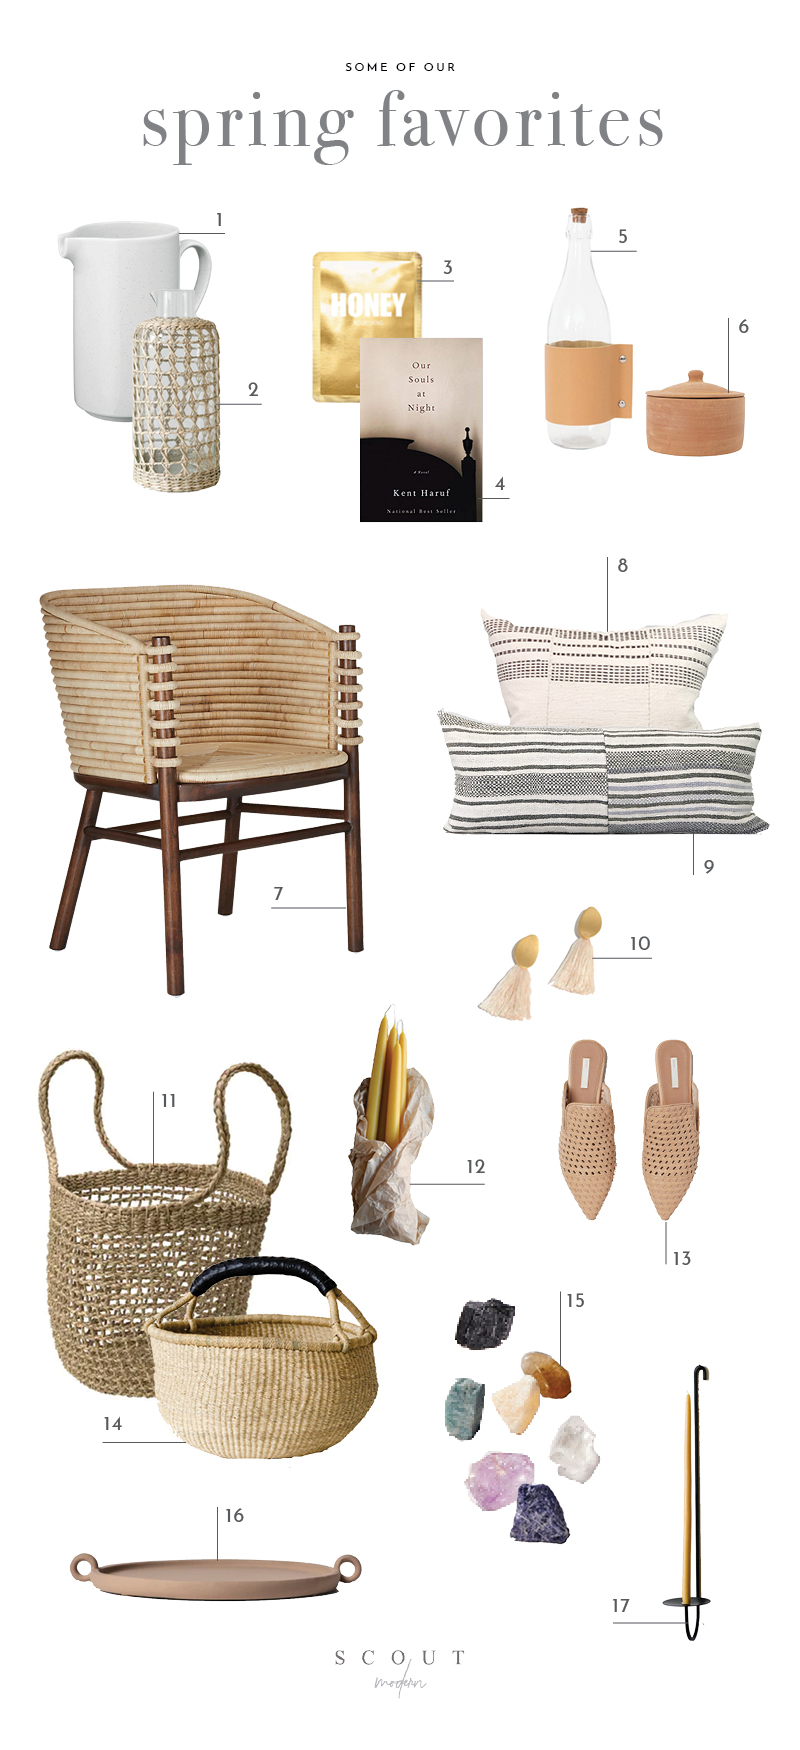 1.  Pitcher  | 2.  Seagrass Cage Carafe  | 3.  LAPCOS Honey Sheet Mask  | 4.  Our Souls At Night Book  | 5.  Leather Wrapped Bottle  | 6.  Terracotta Canister  | 7. T ejido Dining Chair  | 8.  African Striped Pillow  | 9.  Chinese Textile Stripe  | 10.  Tassel Statement Earring  | 11.  Tankvard Basket  | 12.  Beeswax Taper Candles  | 13.  Mules  | 14.  Bolga Basket (Large)  | 15.  Chakra Crystal Collection  | 16.  Eathenware Tray  | 17.  Iron Candle Holder